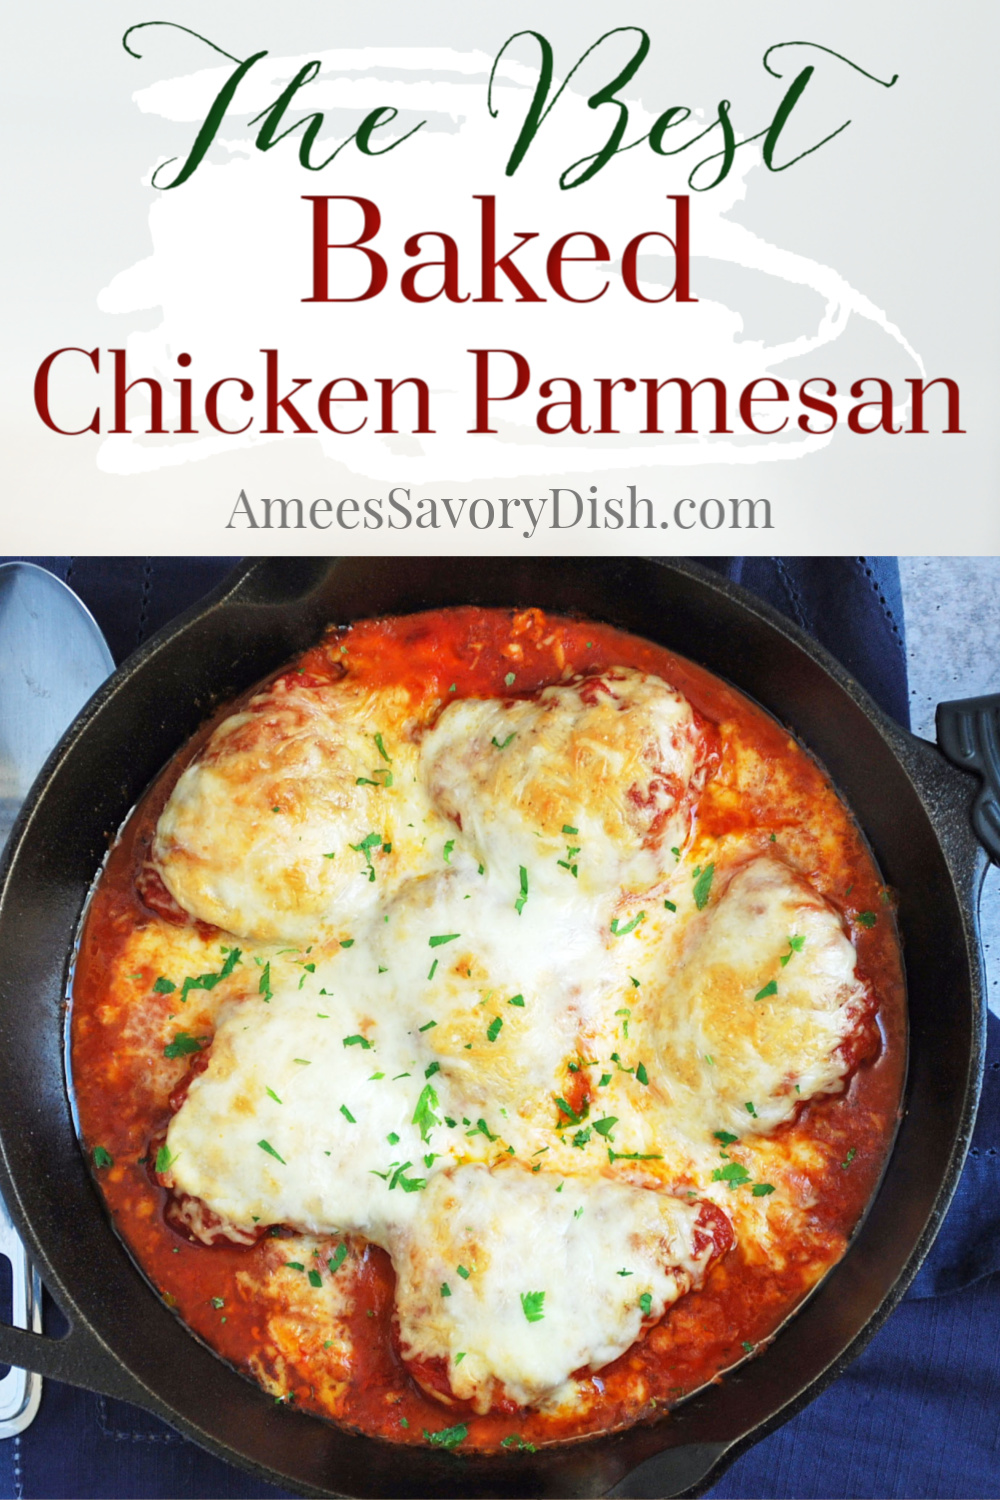 This easy healthier baked chicken parmesan makes a tasty, kid-friendly weeknight meal that doesn't take a lot of time to prepare. #bakedchickenparmesan #chickenparmesan #easychickenrecipe via @Ameessavorydish